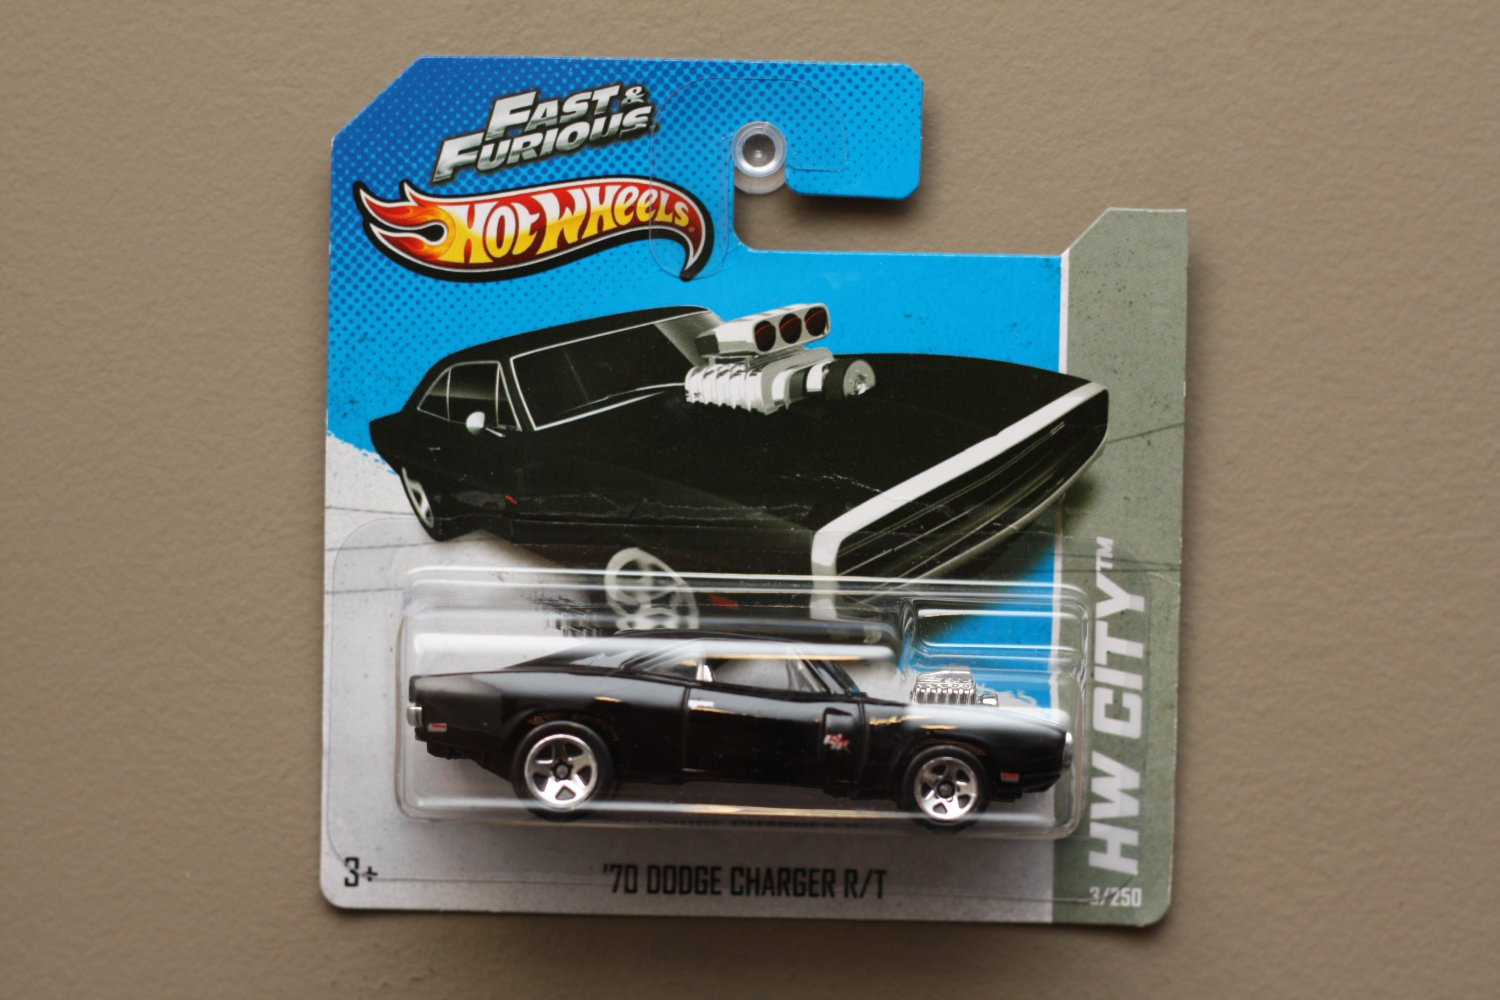 Hot Wheels 2013 HW City '70 Dodge Charger R/T (black) (Fast & Furious) (SEE CONDITION)